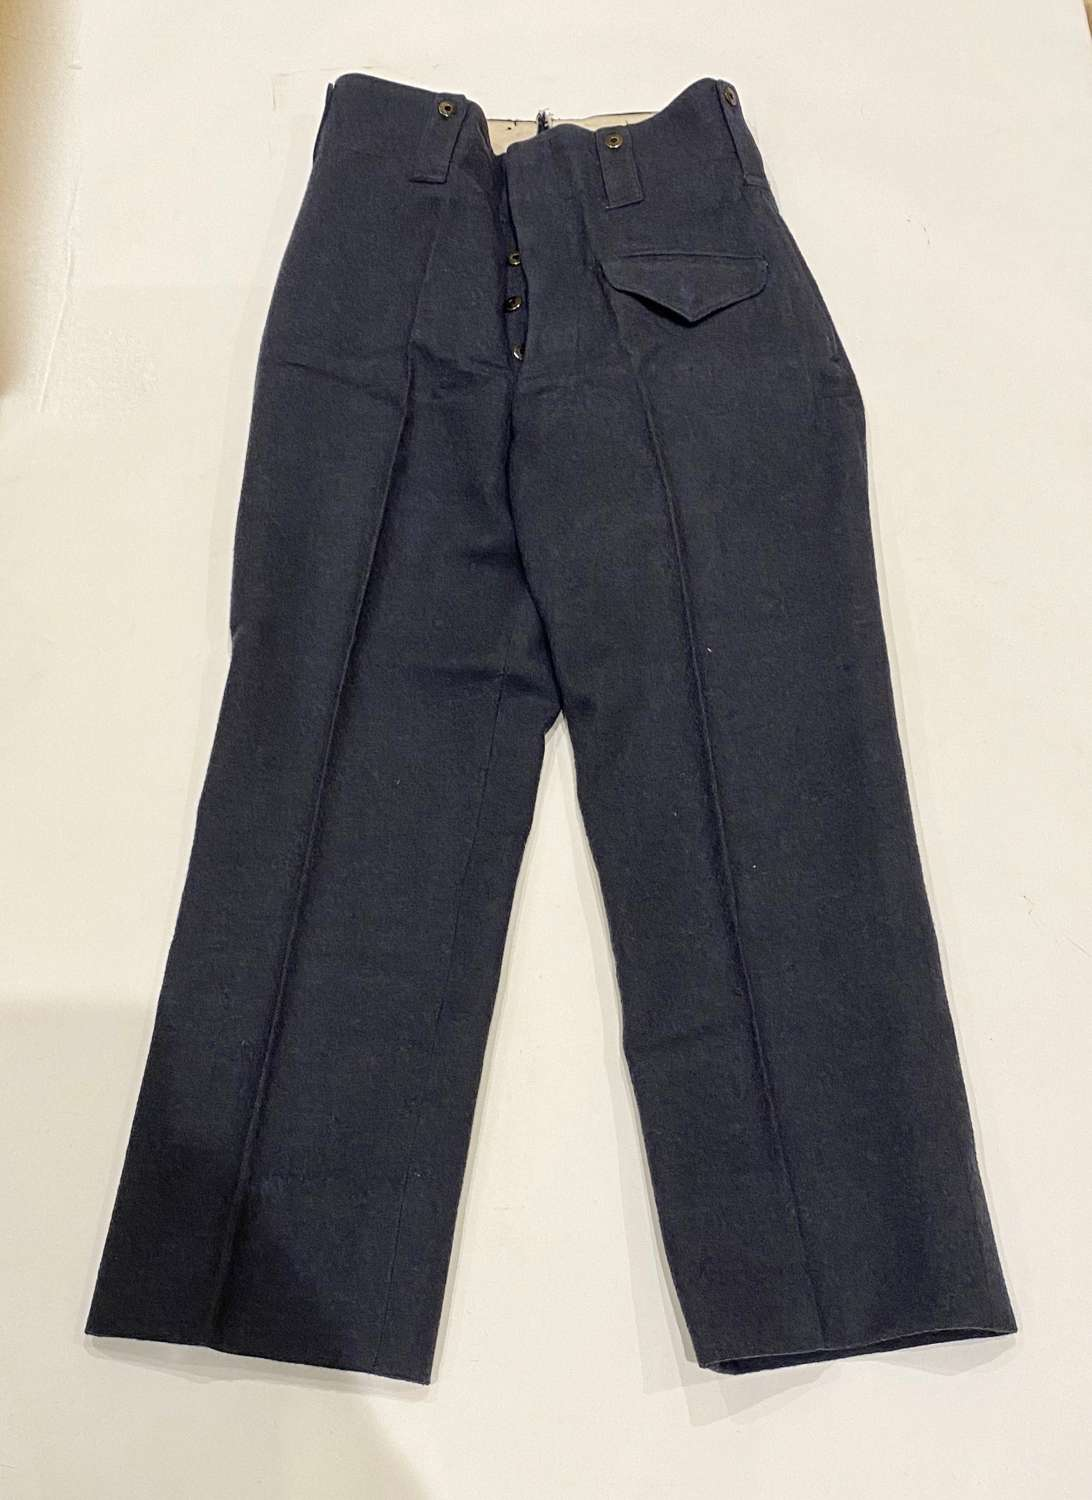 WW2 1942 RCAF Canadian Air Force Battledress Trousers. Large Size